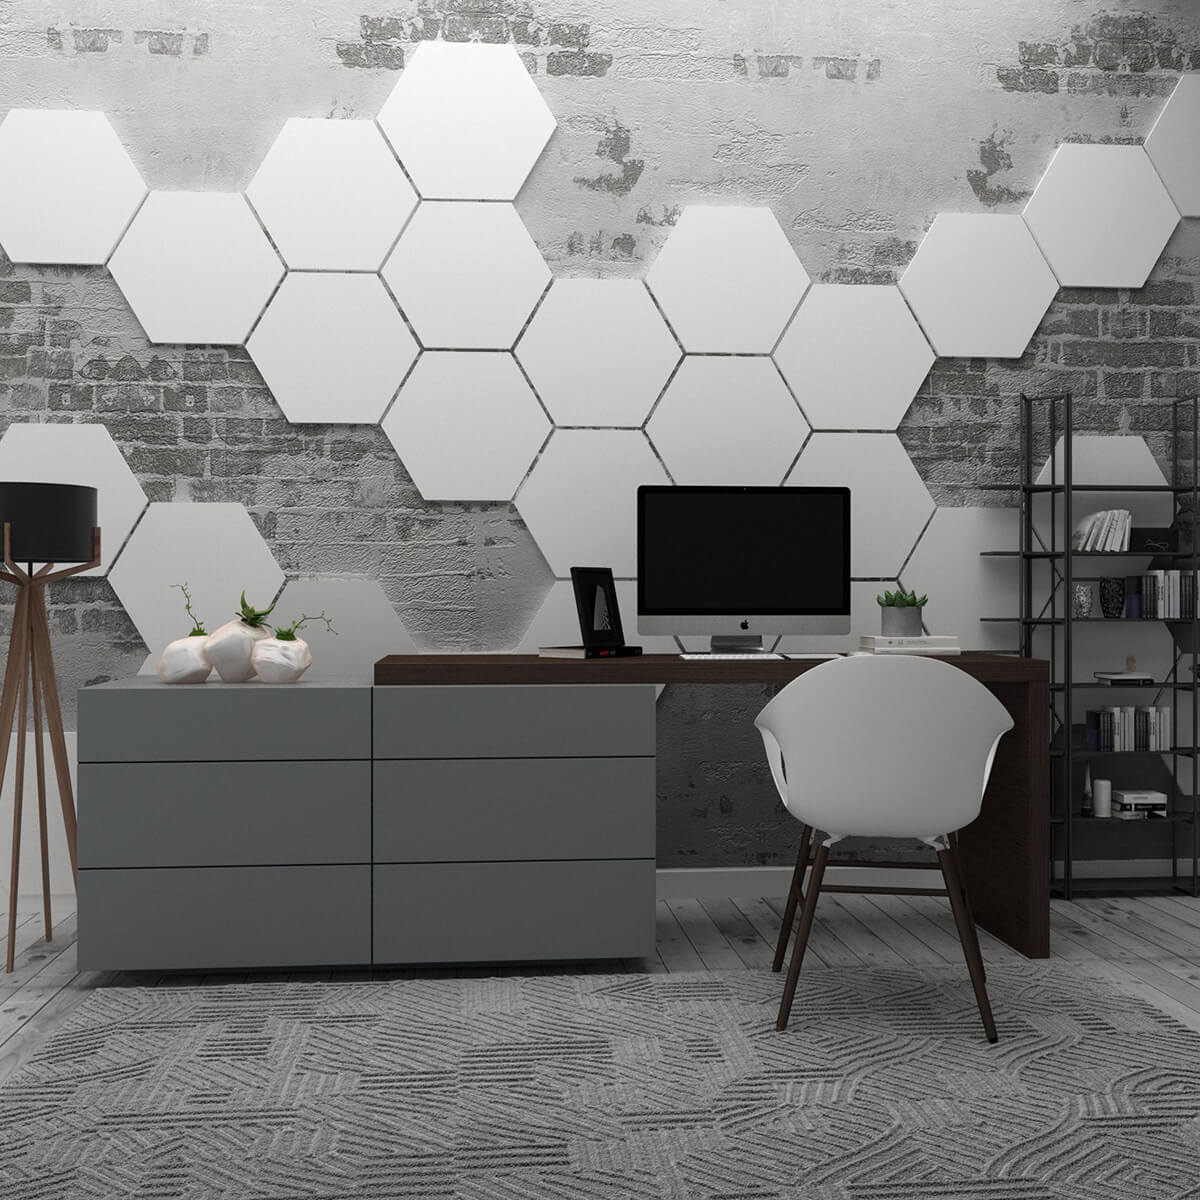 Modern Hexagon Honeycomb Wall Art